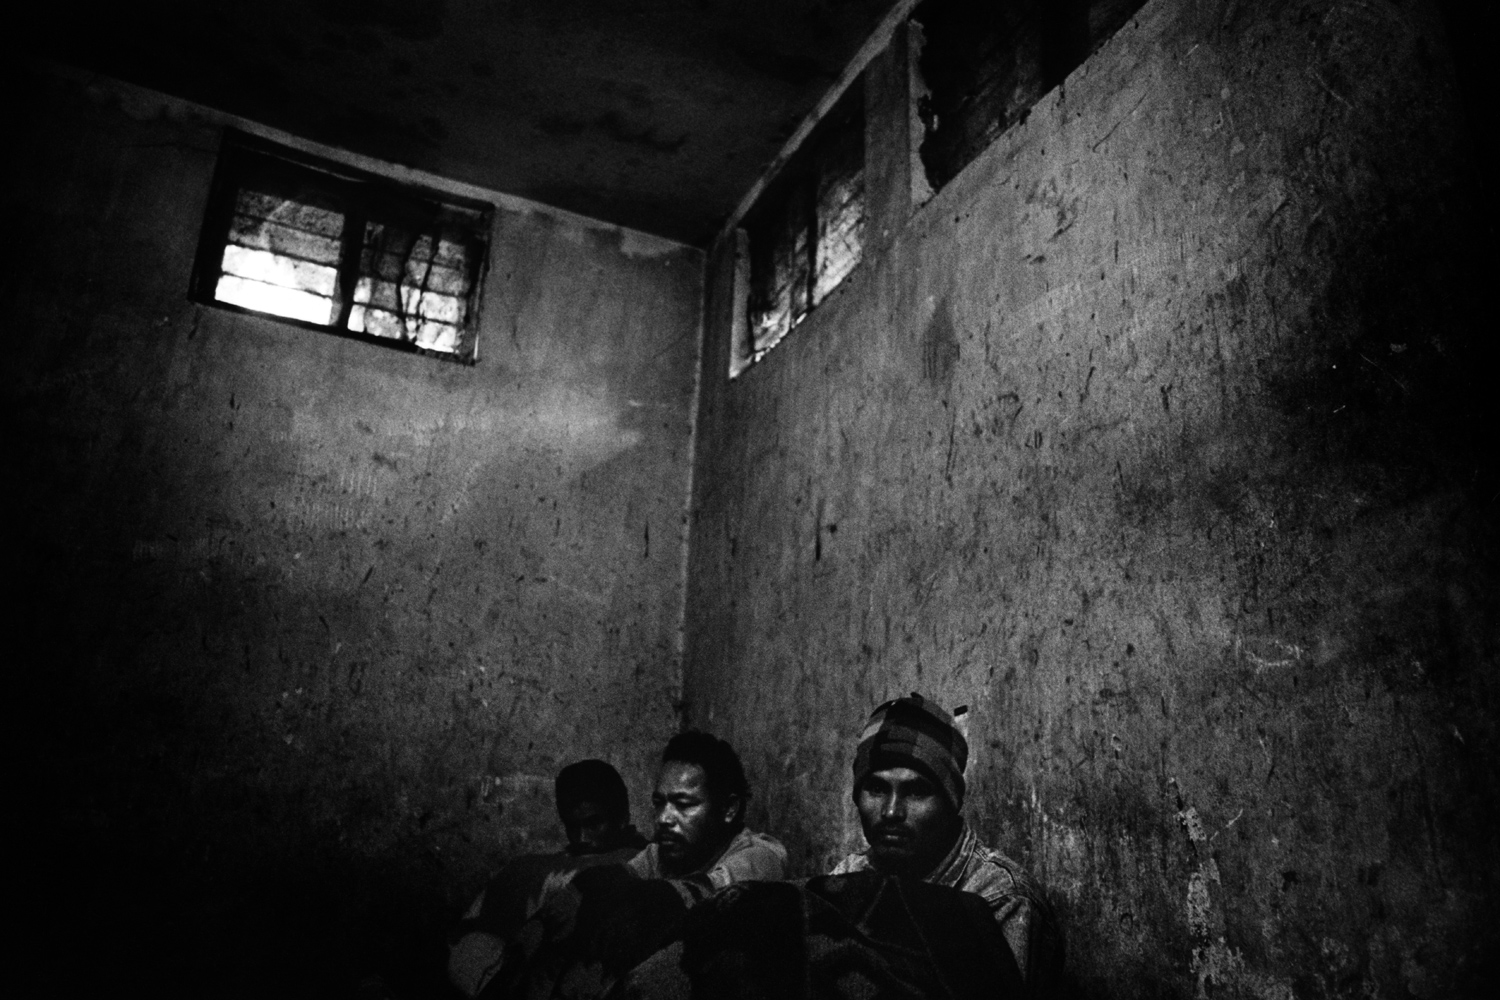 Nepal                                                                                             Poachers sit in a military jail, having been arrested for poaching in Chitwan National Park. They will spend the next twenty years incarcerated.